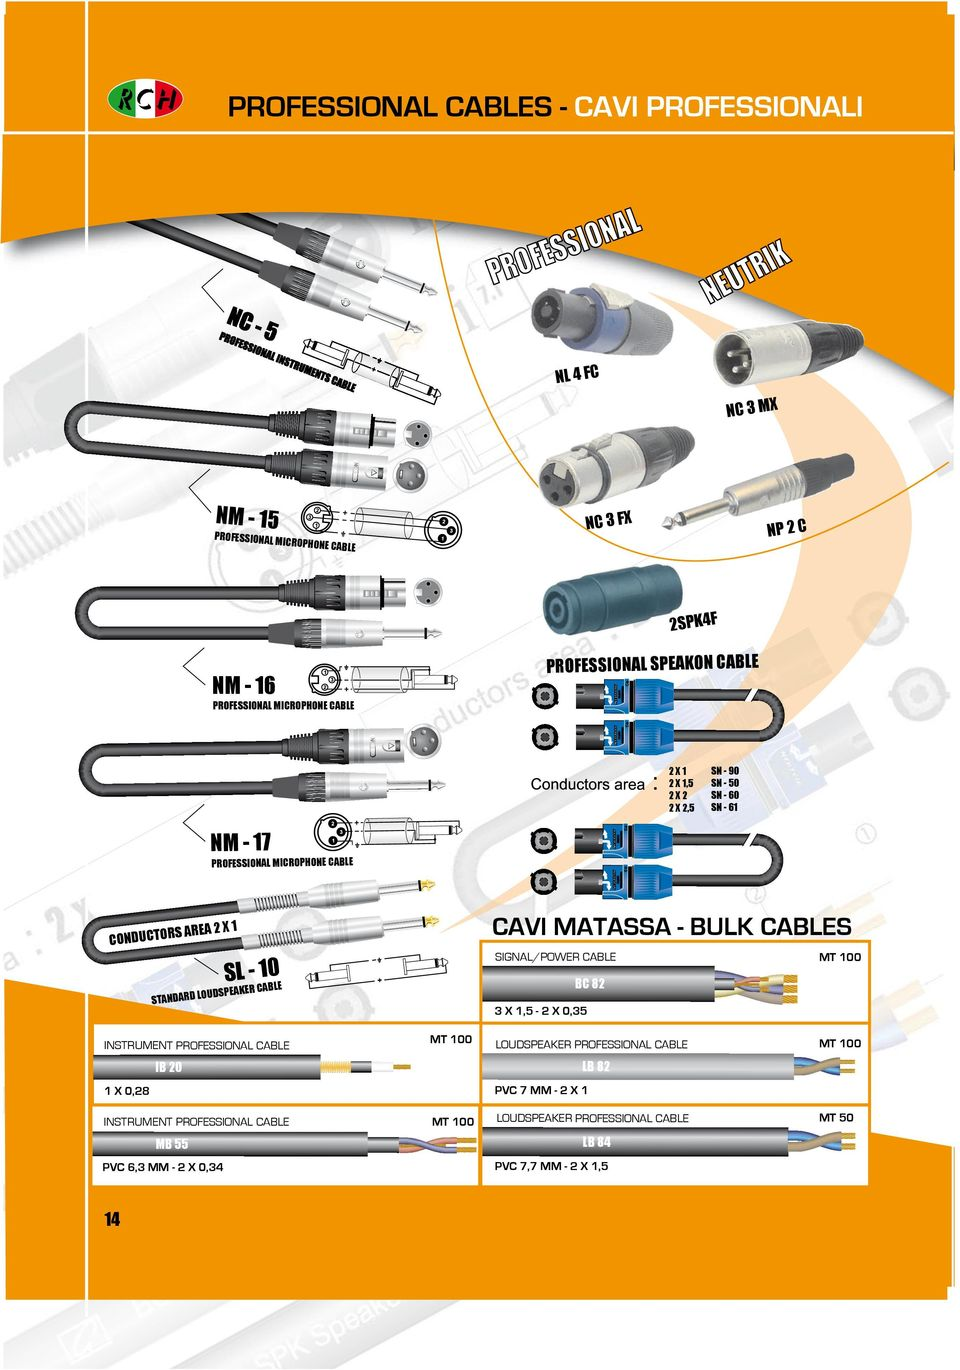 CABLE CAVI MATASSA - BULK CABLES S AREA 2 X 1 CONDUCTOR SIGNAL/POWER CABLE SL - 10 BC 82 BLE SPEAKER CA UD STANDARD LO INSTRUMENT PROFESSIONAL CABLE 3 X 1,5-2 X 0,35 MT 100 LOUDSPEAKER